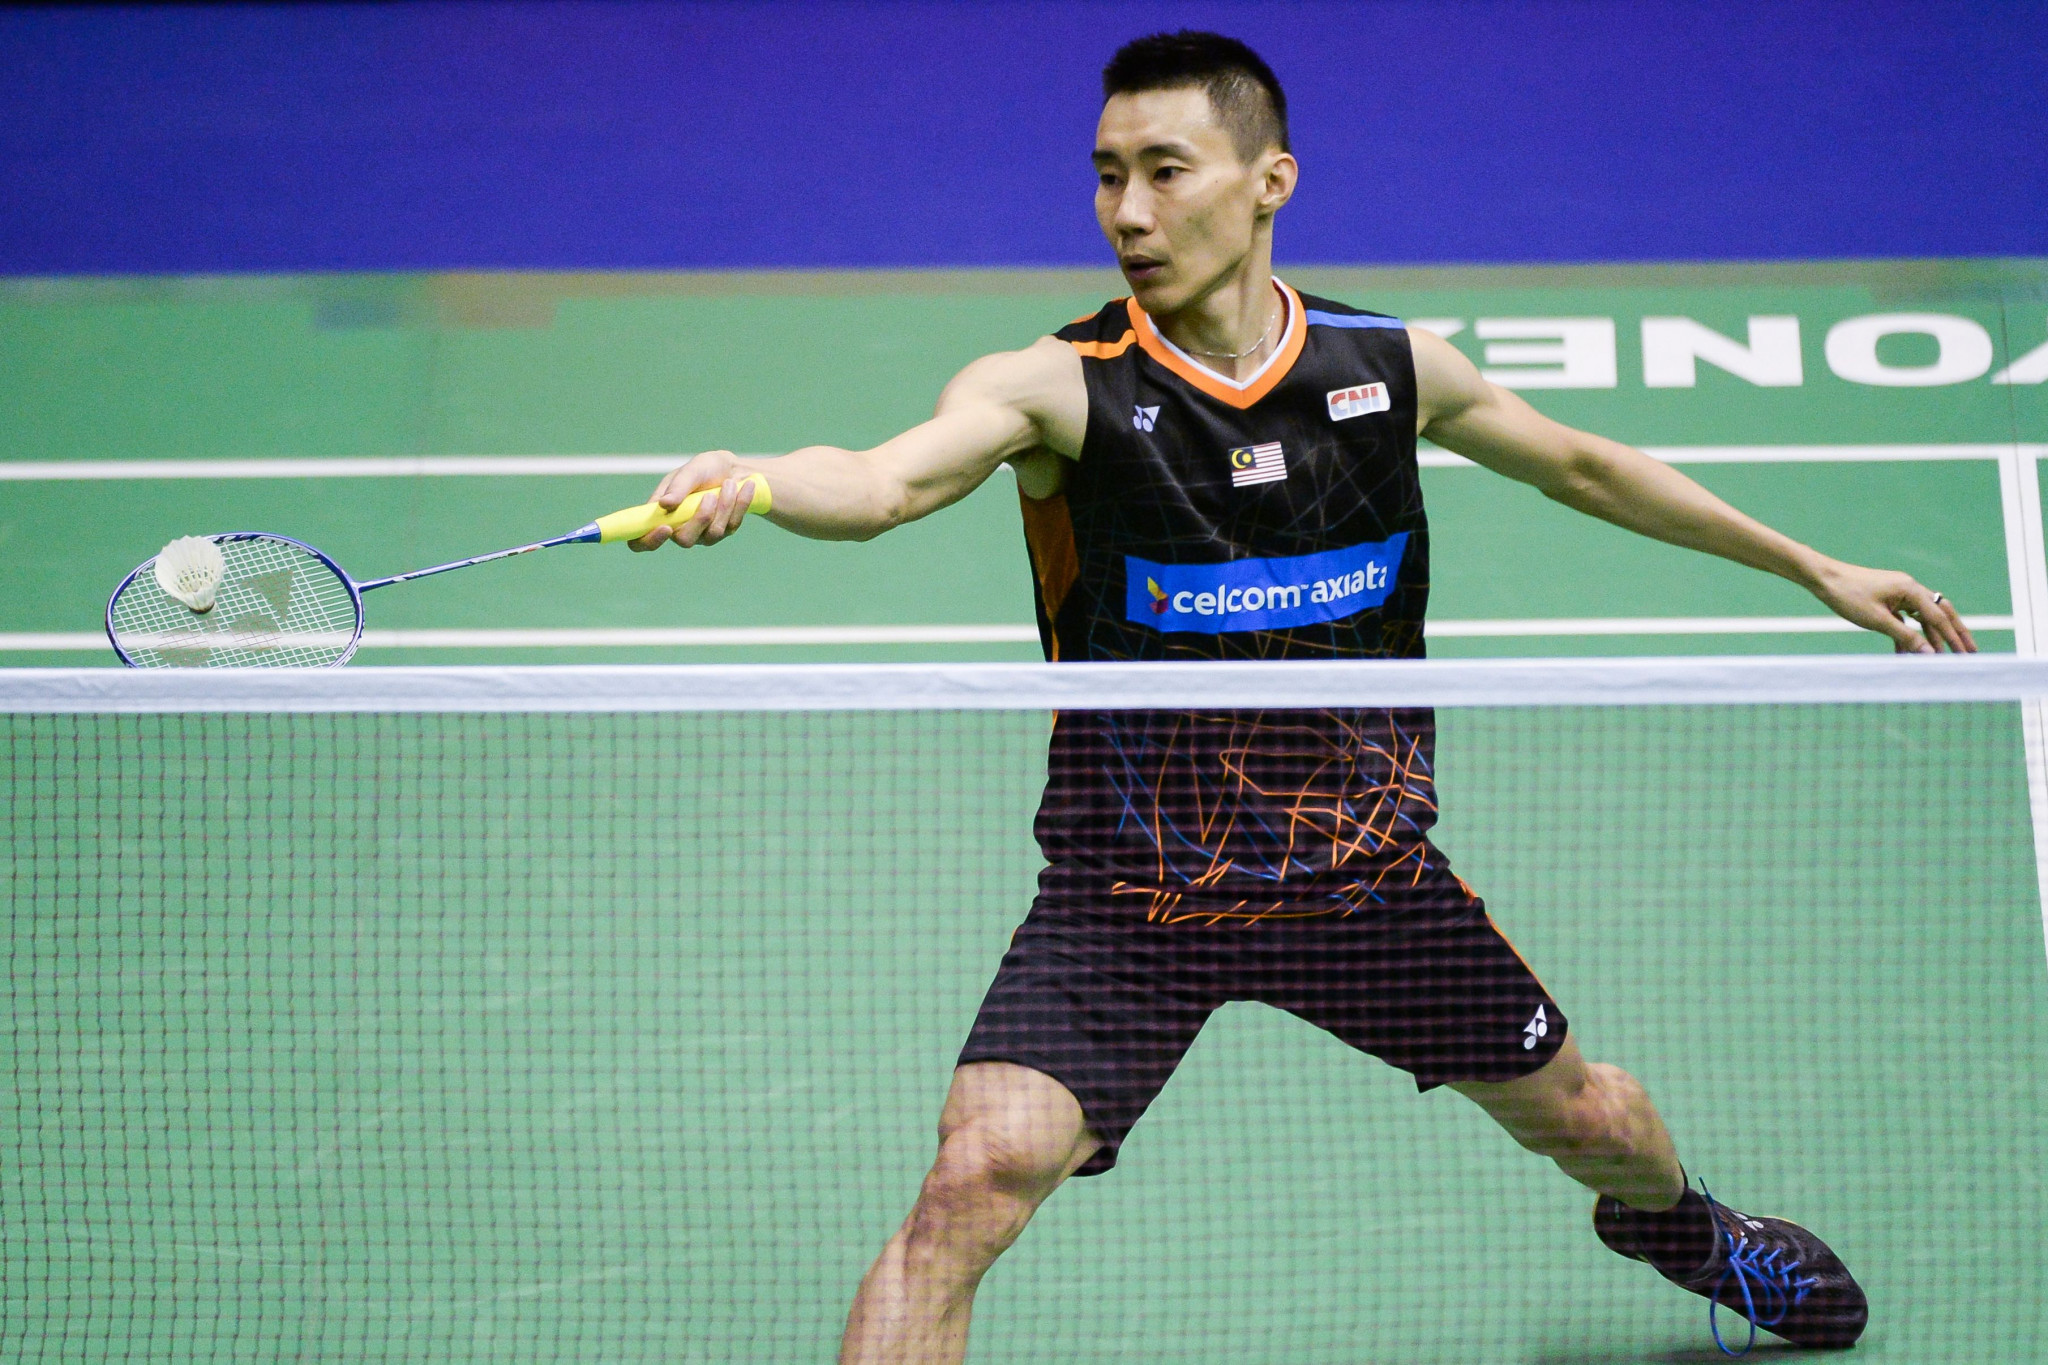 Olympic gold medal rematch headlines group stage draw for BWF World Superseries Finals